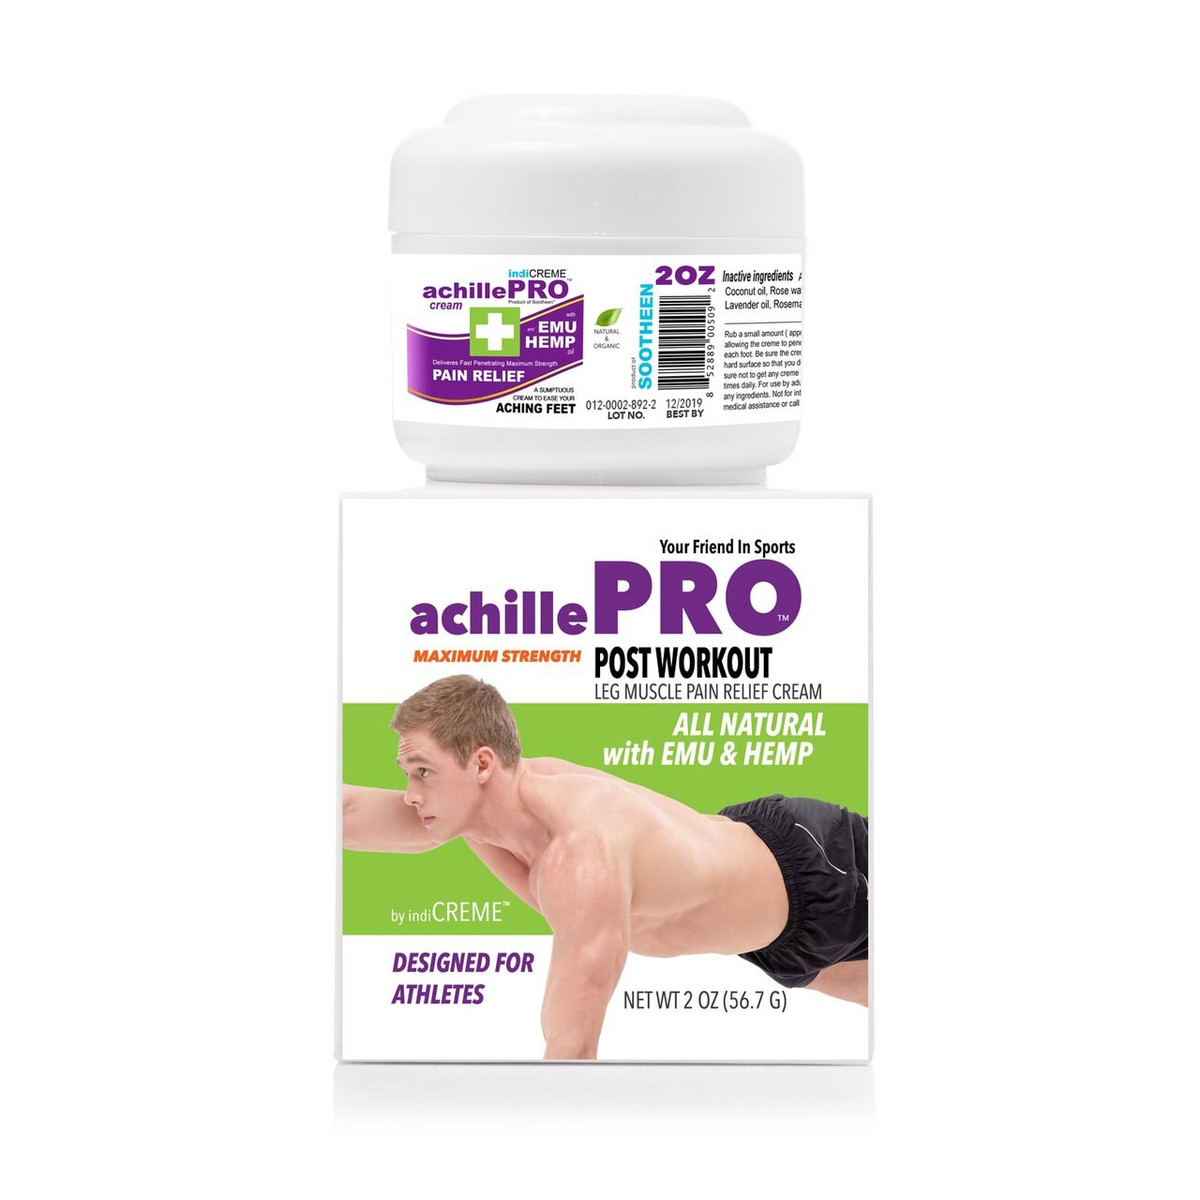 achillePRO® Post-Workout Foot Cream